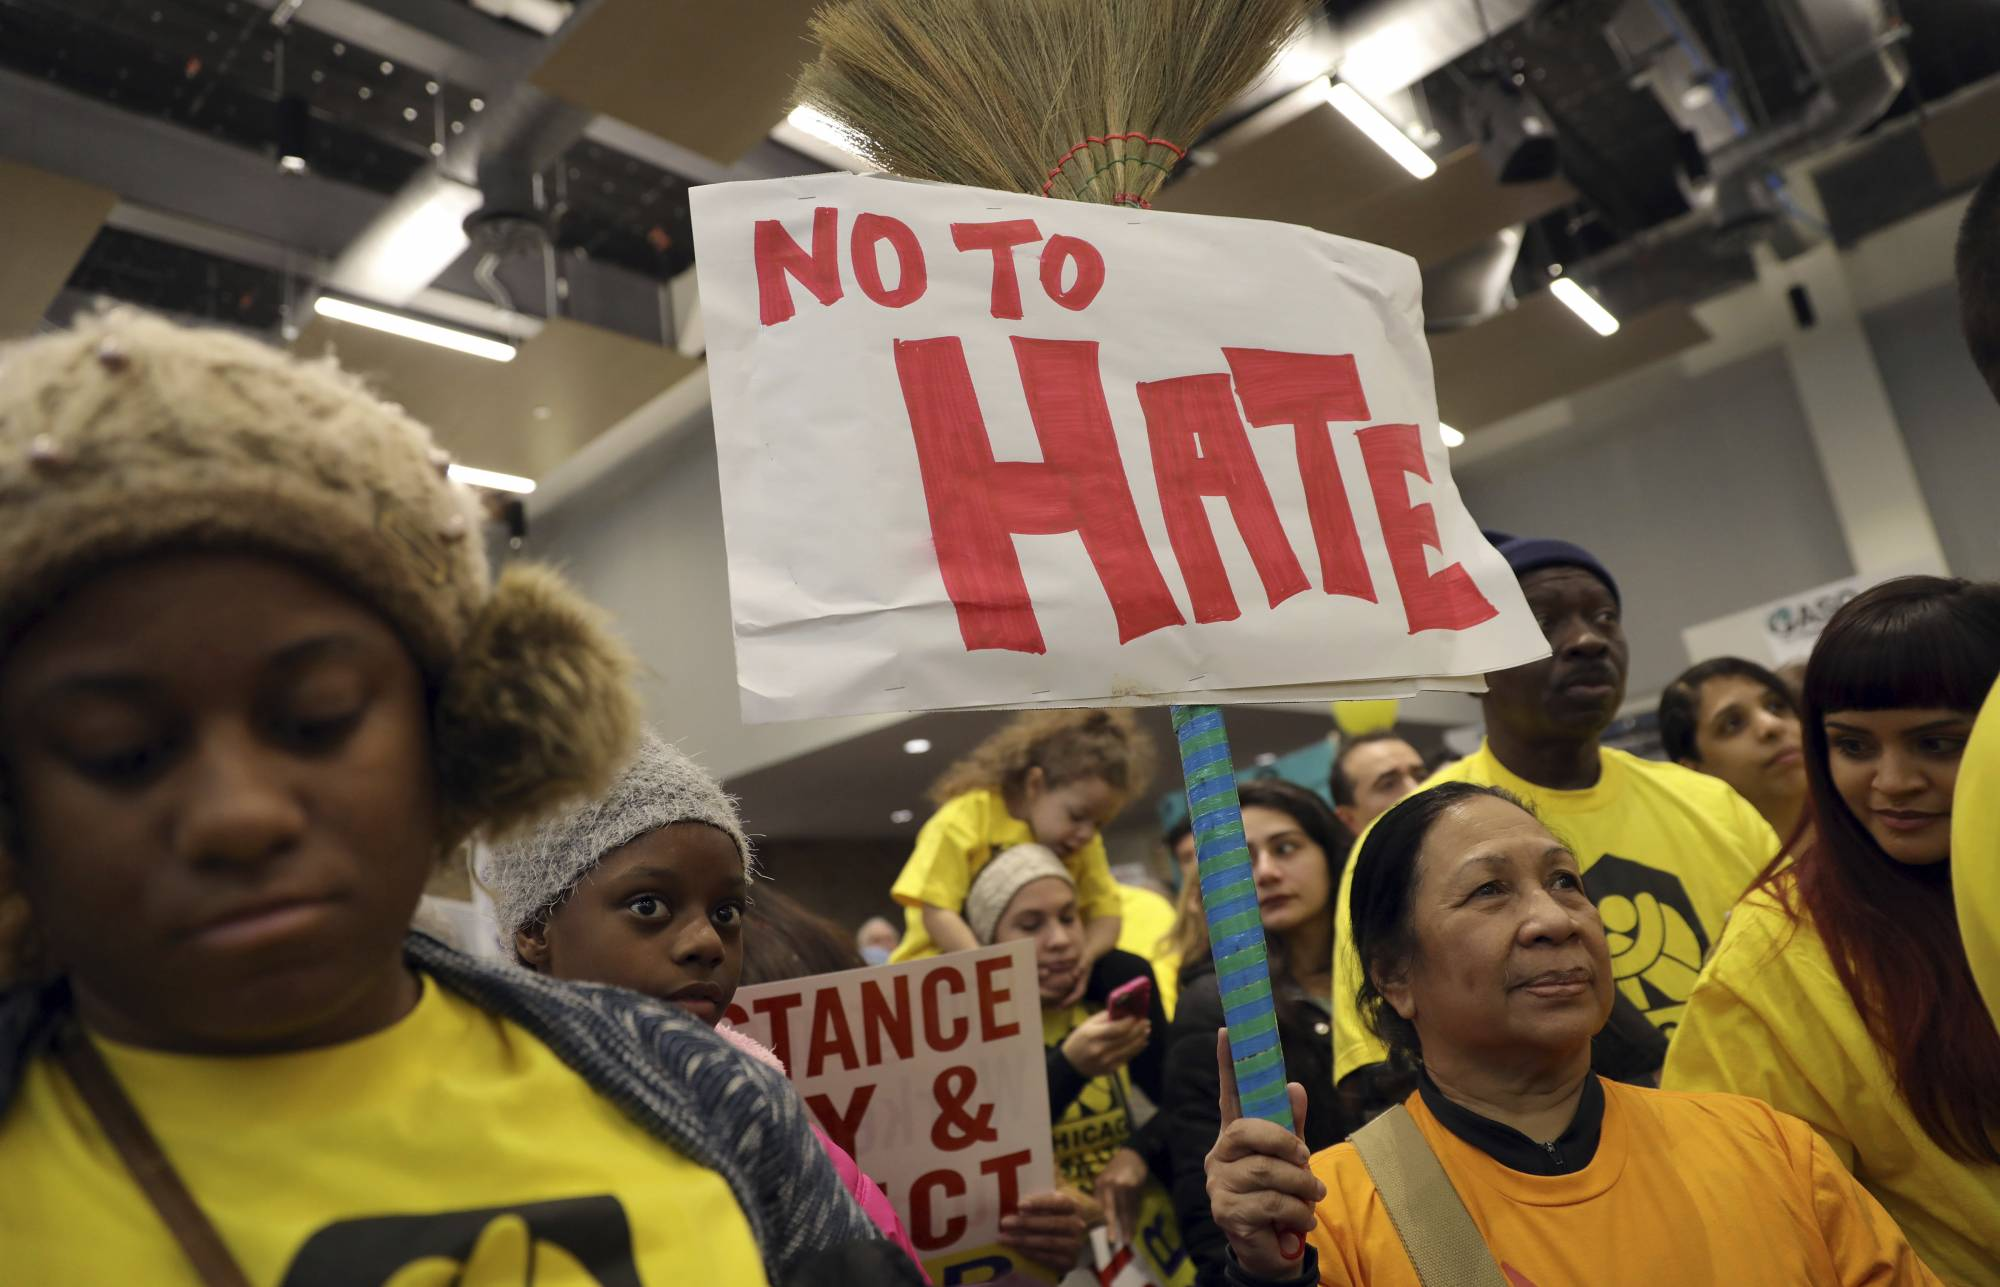 australia racist country essay Racism exists in australia – are we doing enough to the cultural diversity and social cohesion of australia as a country racist actions ourselves, by not.